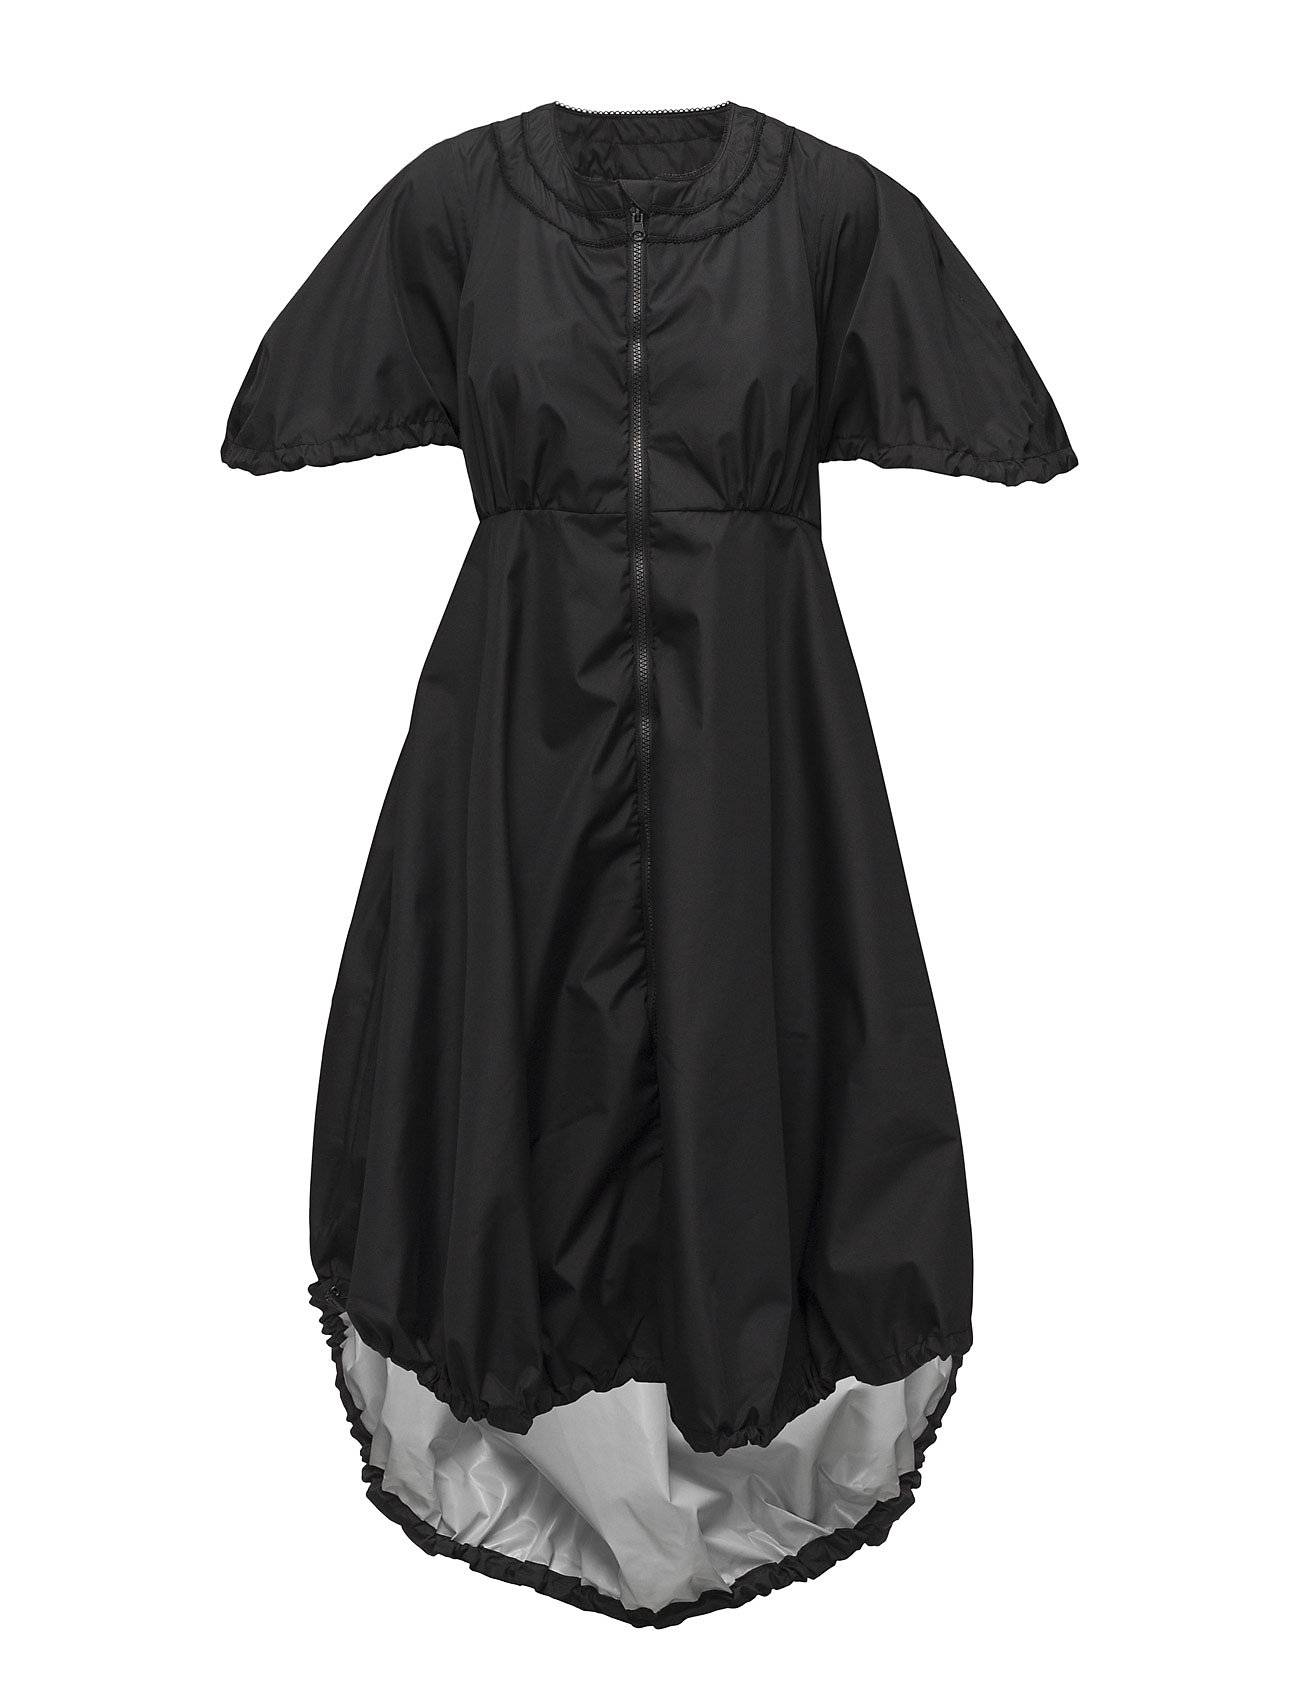 Ilse Jacobsen by Emma Jorn Womens Rain Dress